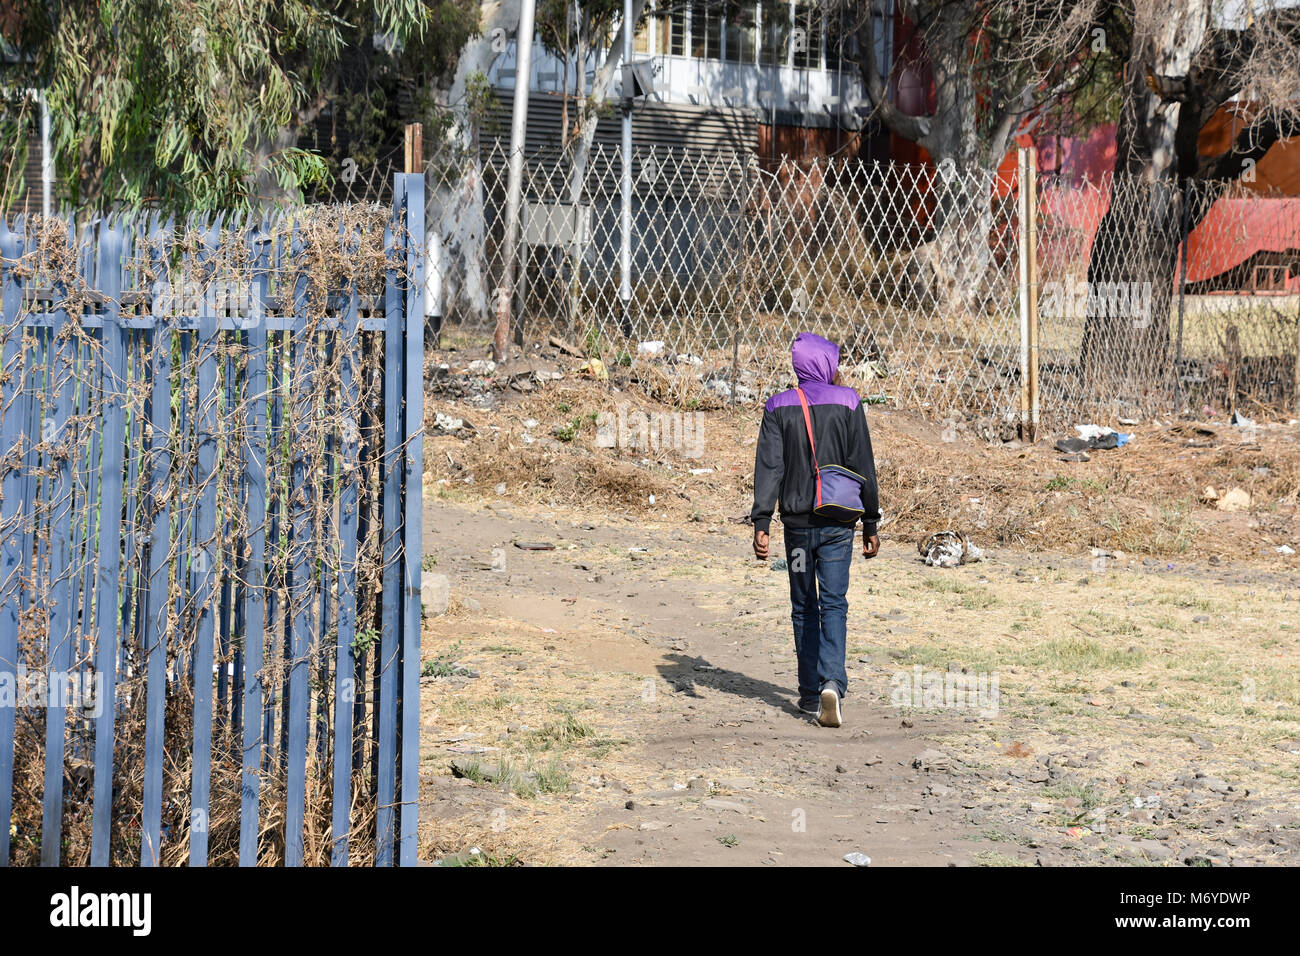 A male walking near a gate with barbed razor wire in Pretoria South Africa used as steel fencing constructed with - Stock Image